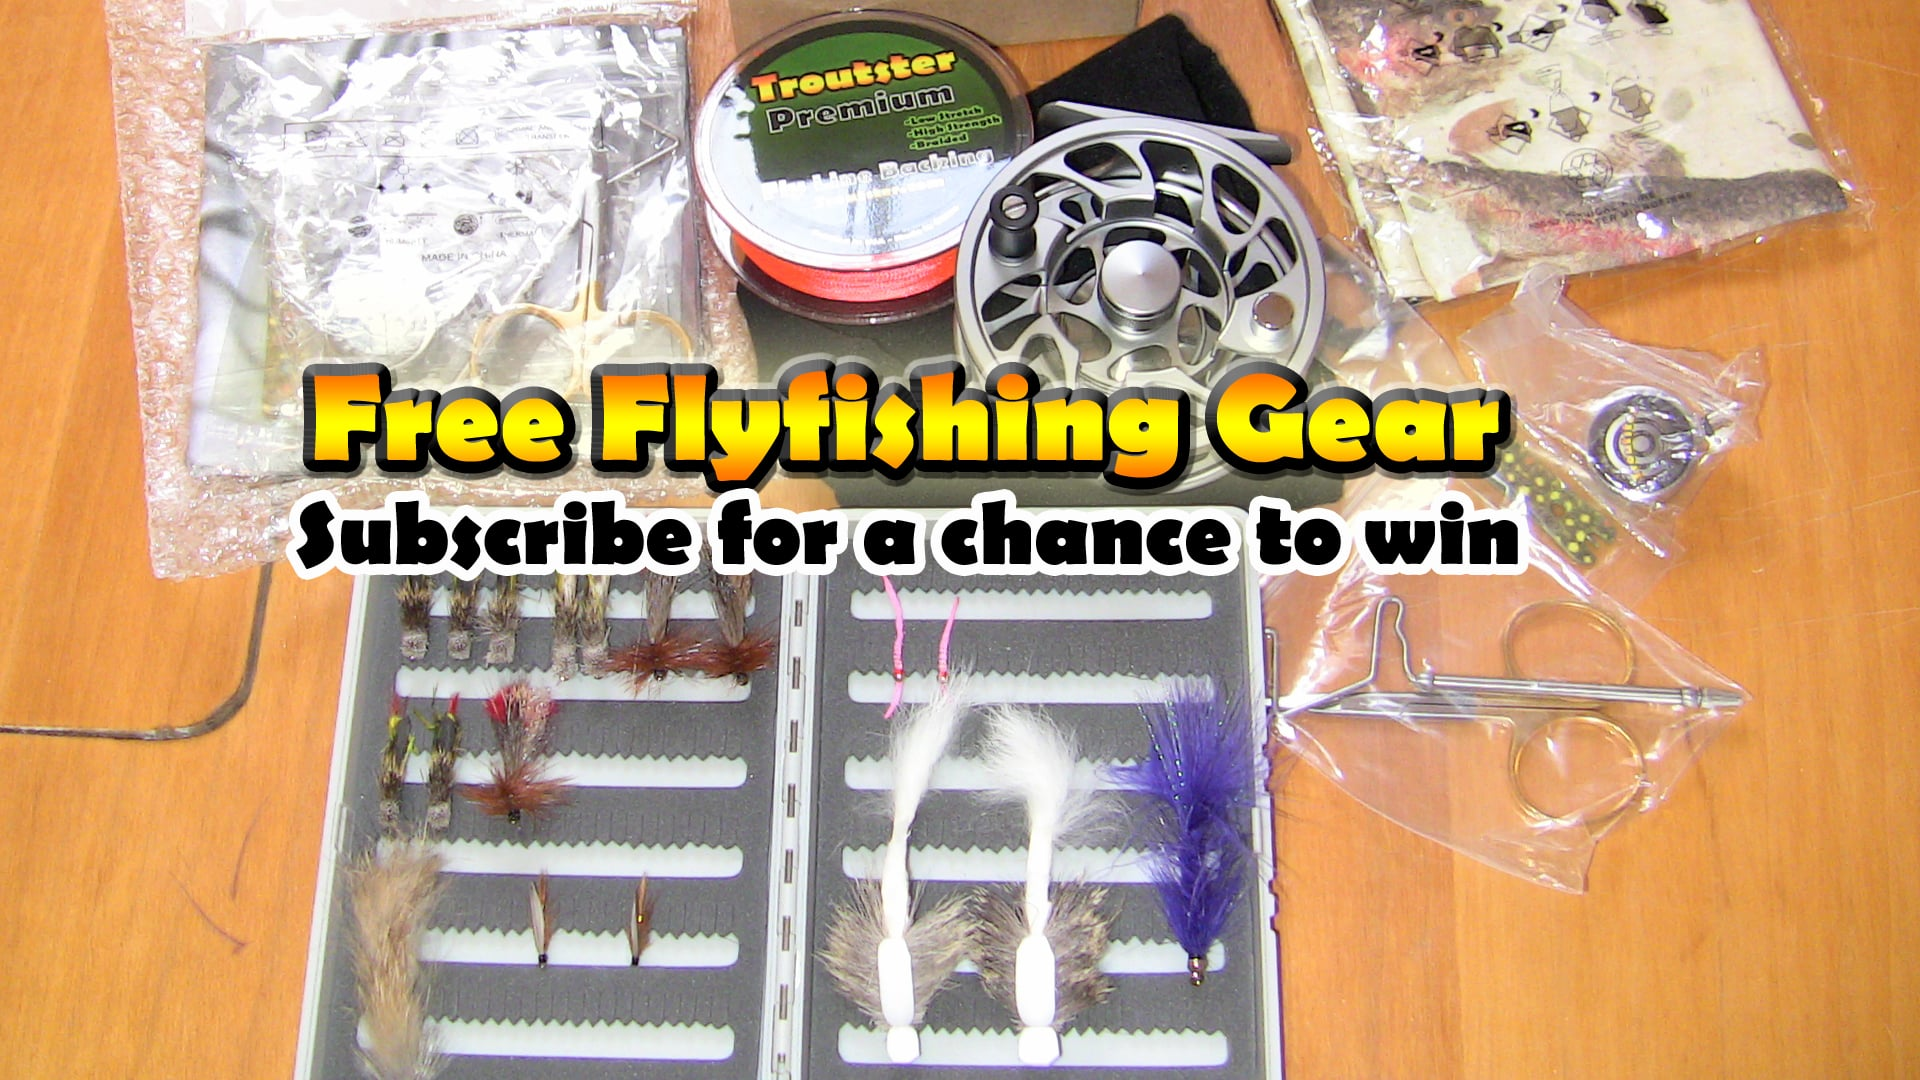 fly fishing gear near me